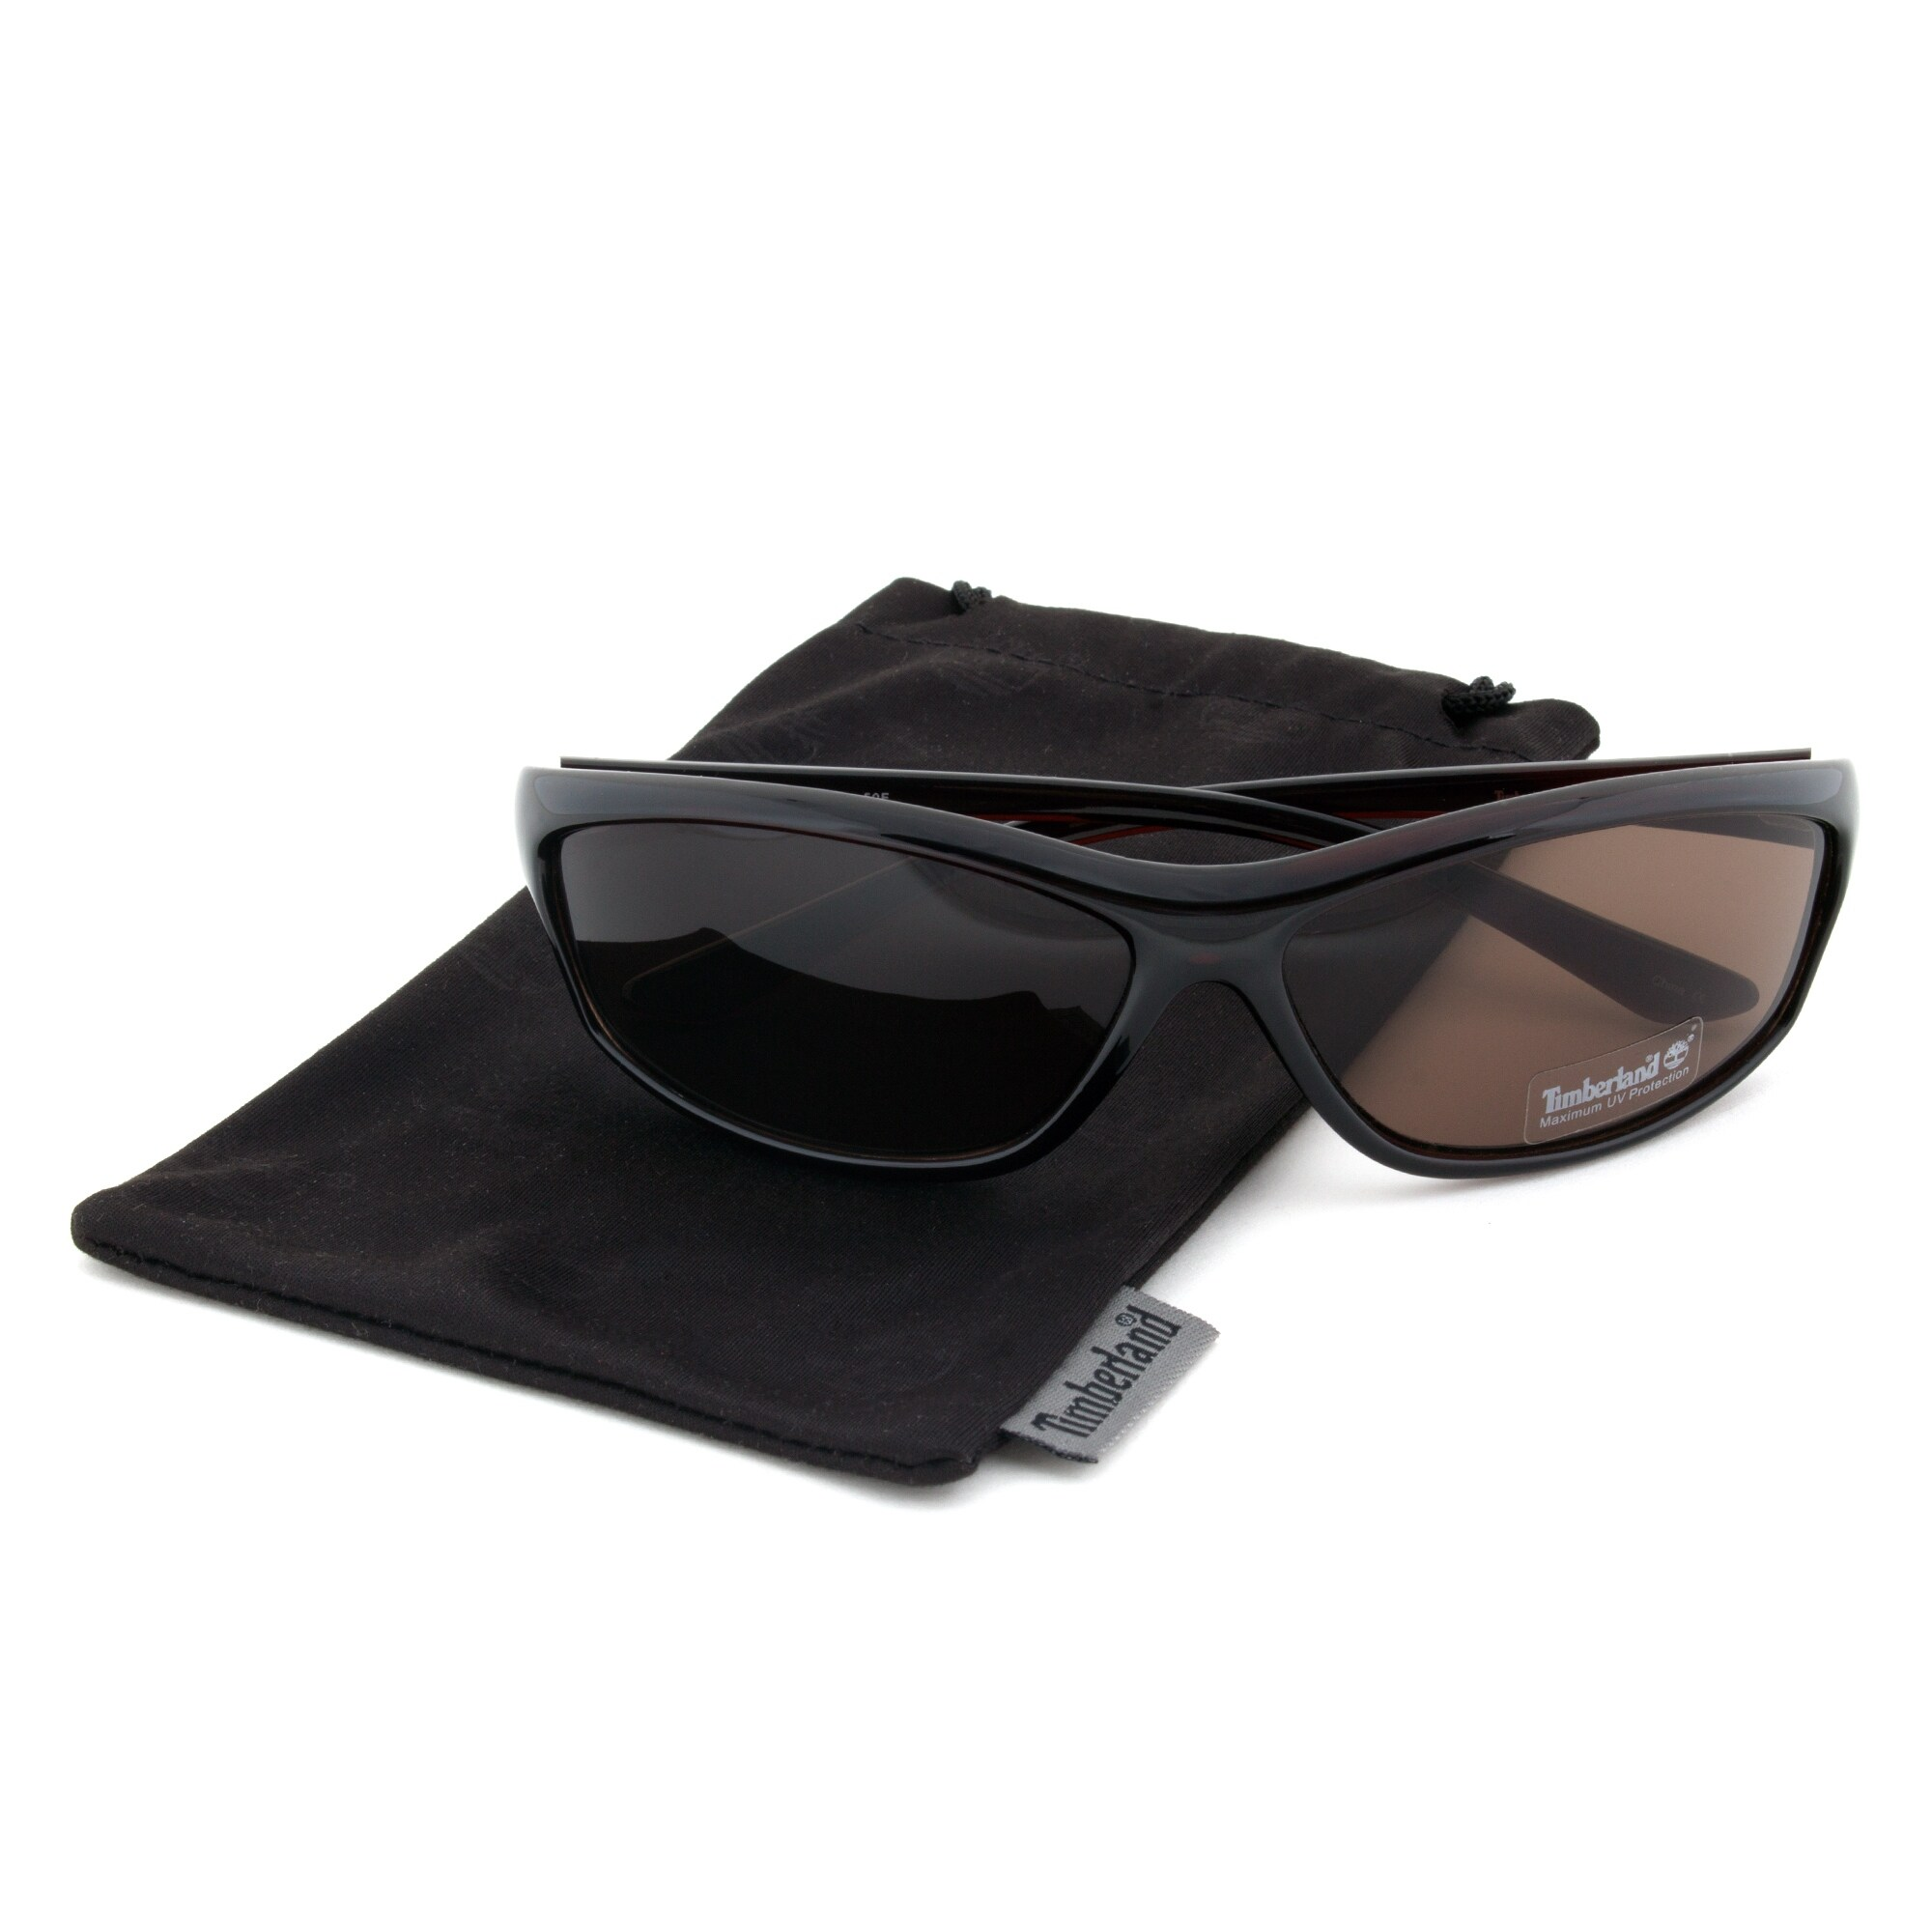 2a52ed42be6d Shop Timberland TB7088 50E Sport Sunglasses - Free Shipping Today -  Overstock - 20760475